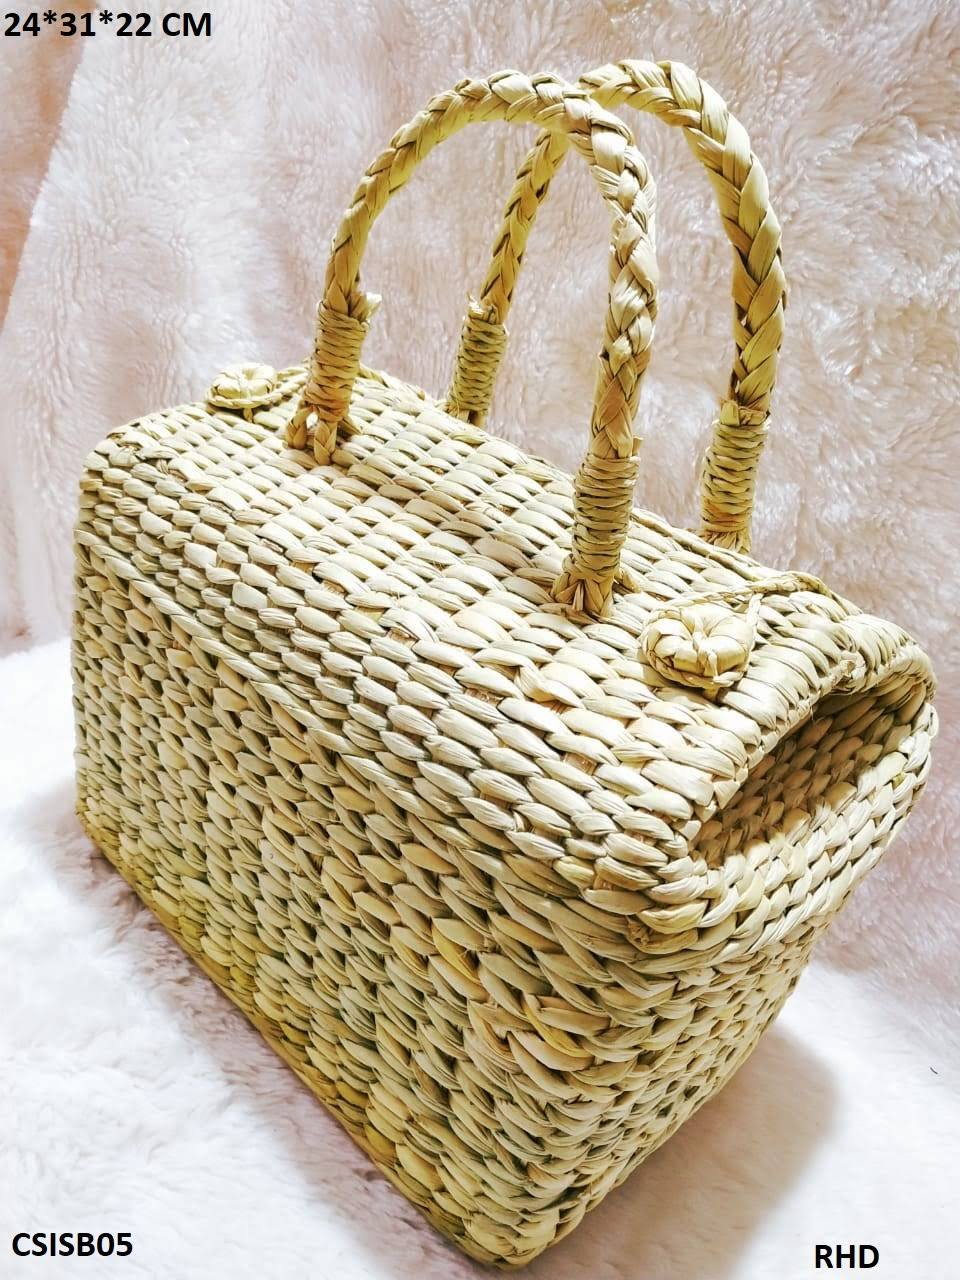 STRAW KONA BASKETS